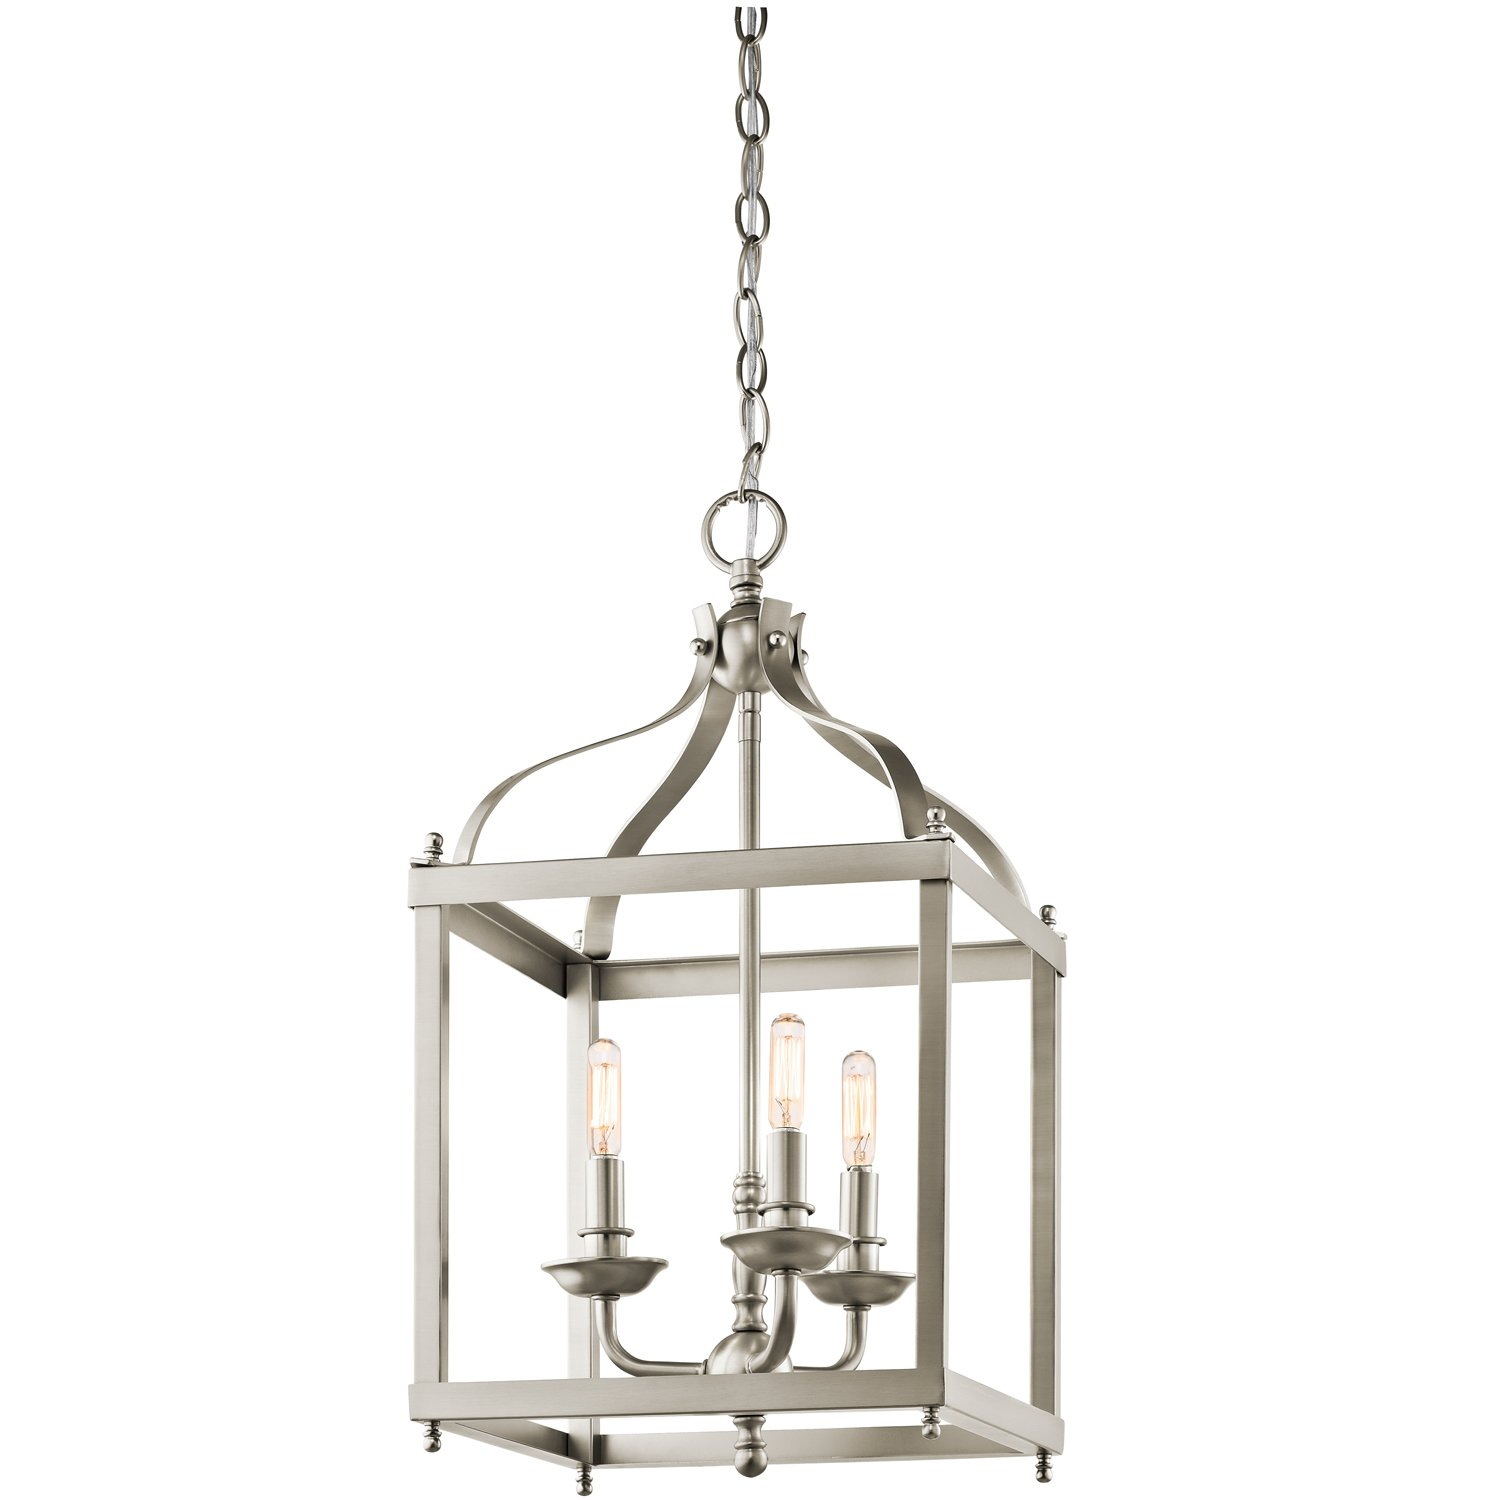 Kichler 42566ni Larkin Indoor Pendant 3 Light Brushed Nickel Ceiling Fixtures Com